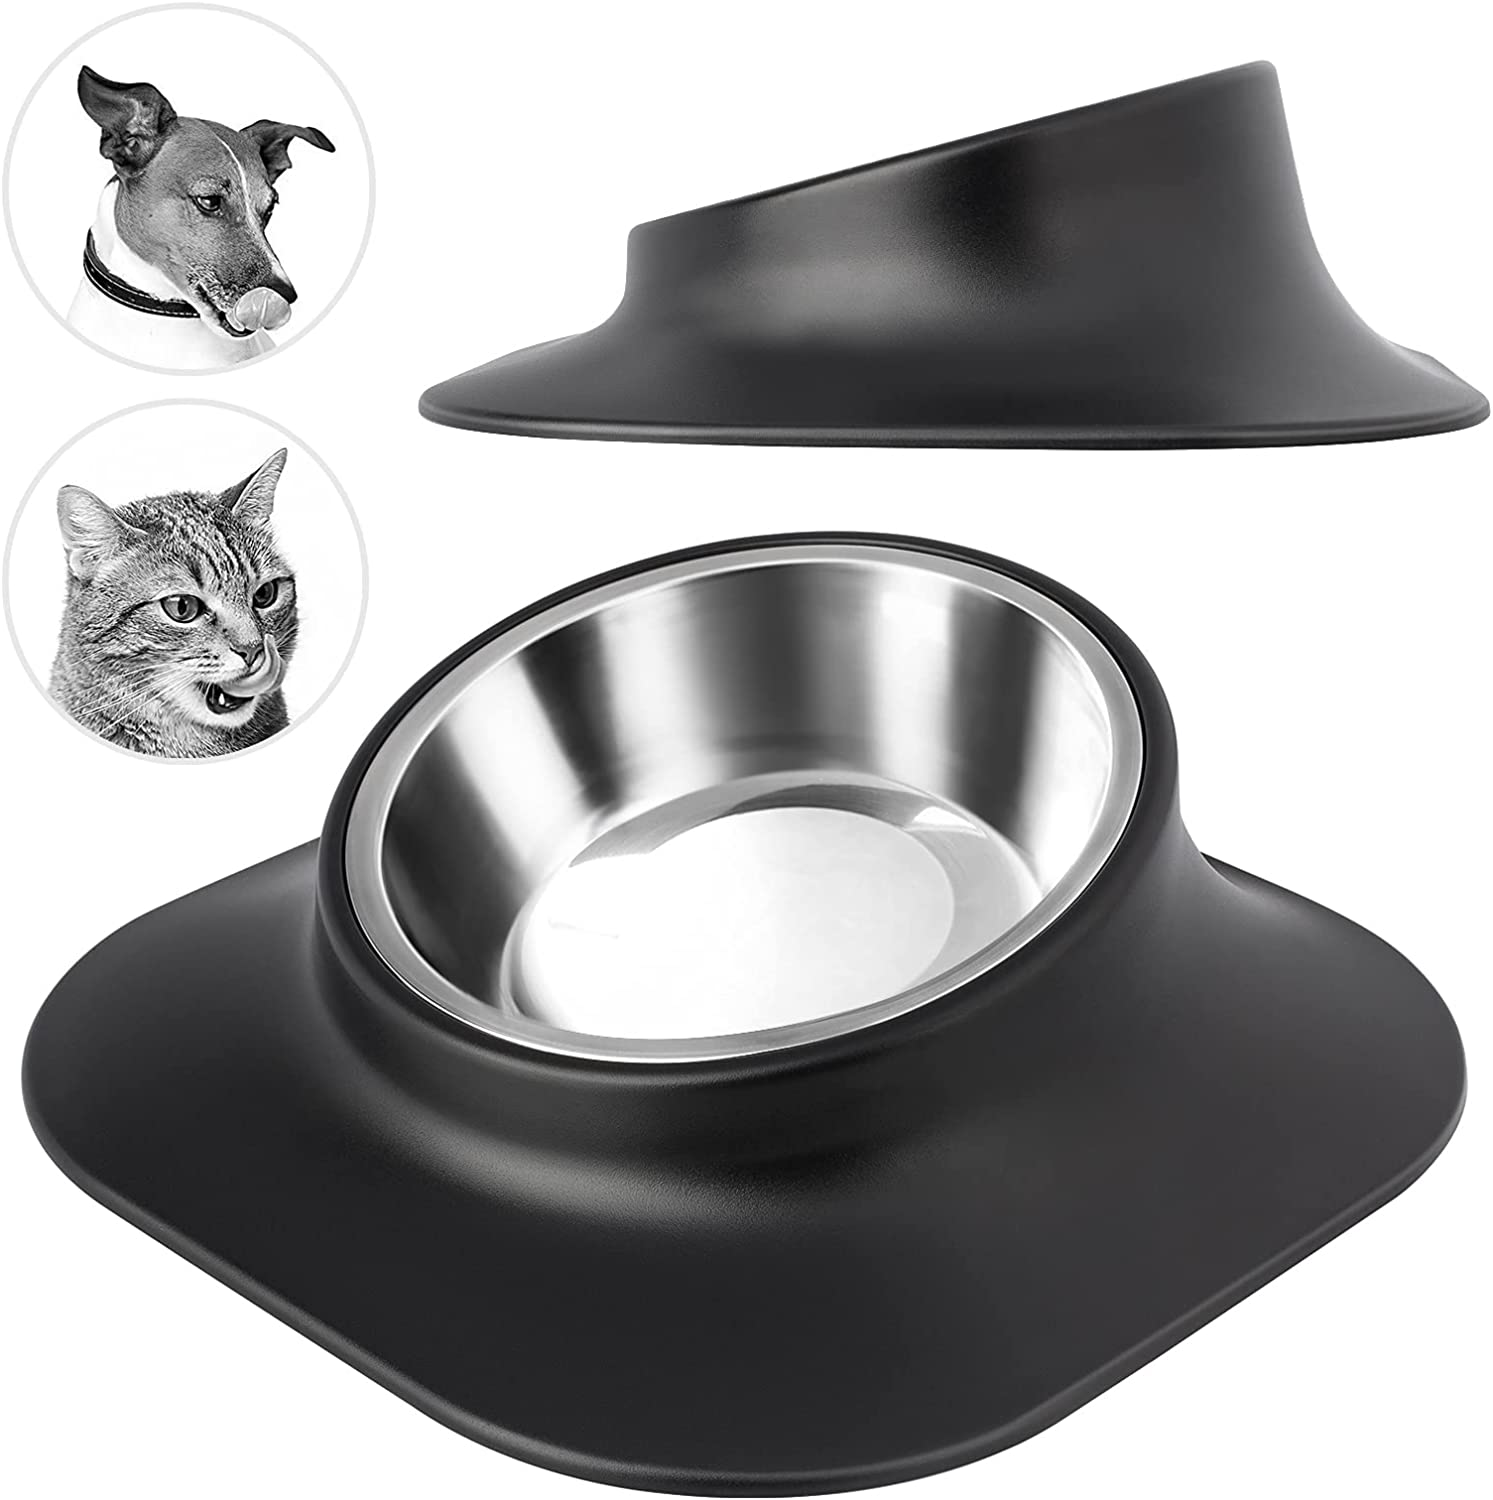 Dog Bowls Cat Food Bowls Stainless Steel Pet Water Bowl, No Spill Non-Skid, 15° Tilted Raised to Protect The Animal Spine, for Pets Puppy Small Medium Dogs 420ml Black (Single Bowl)